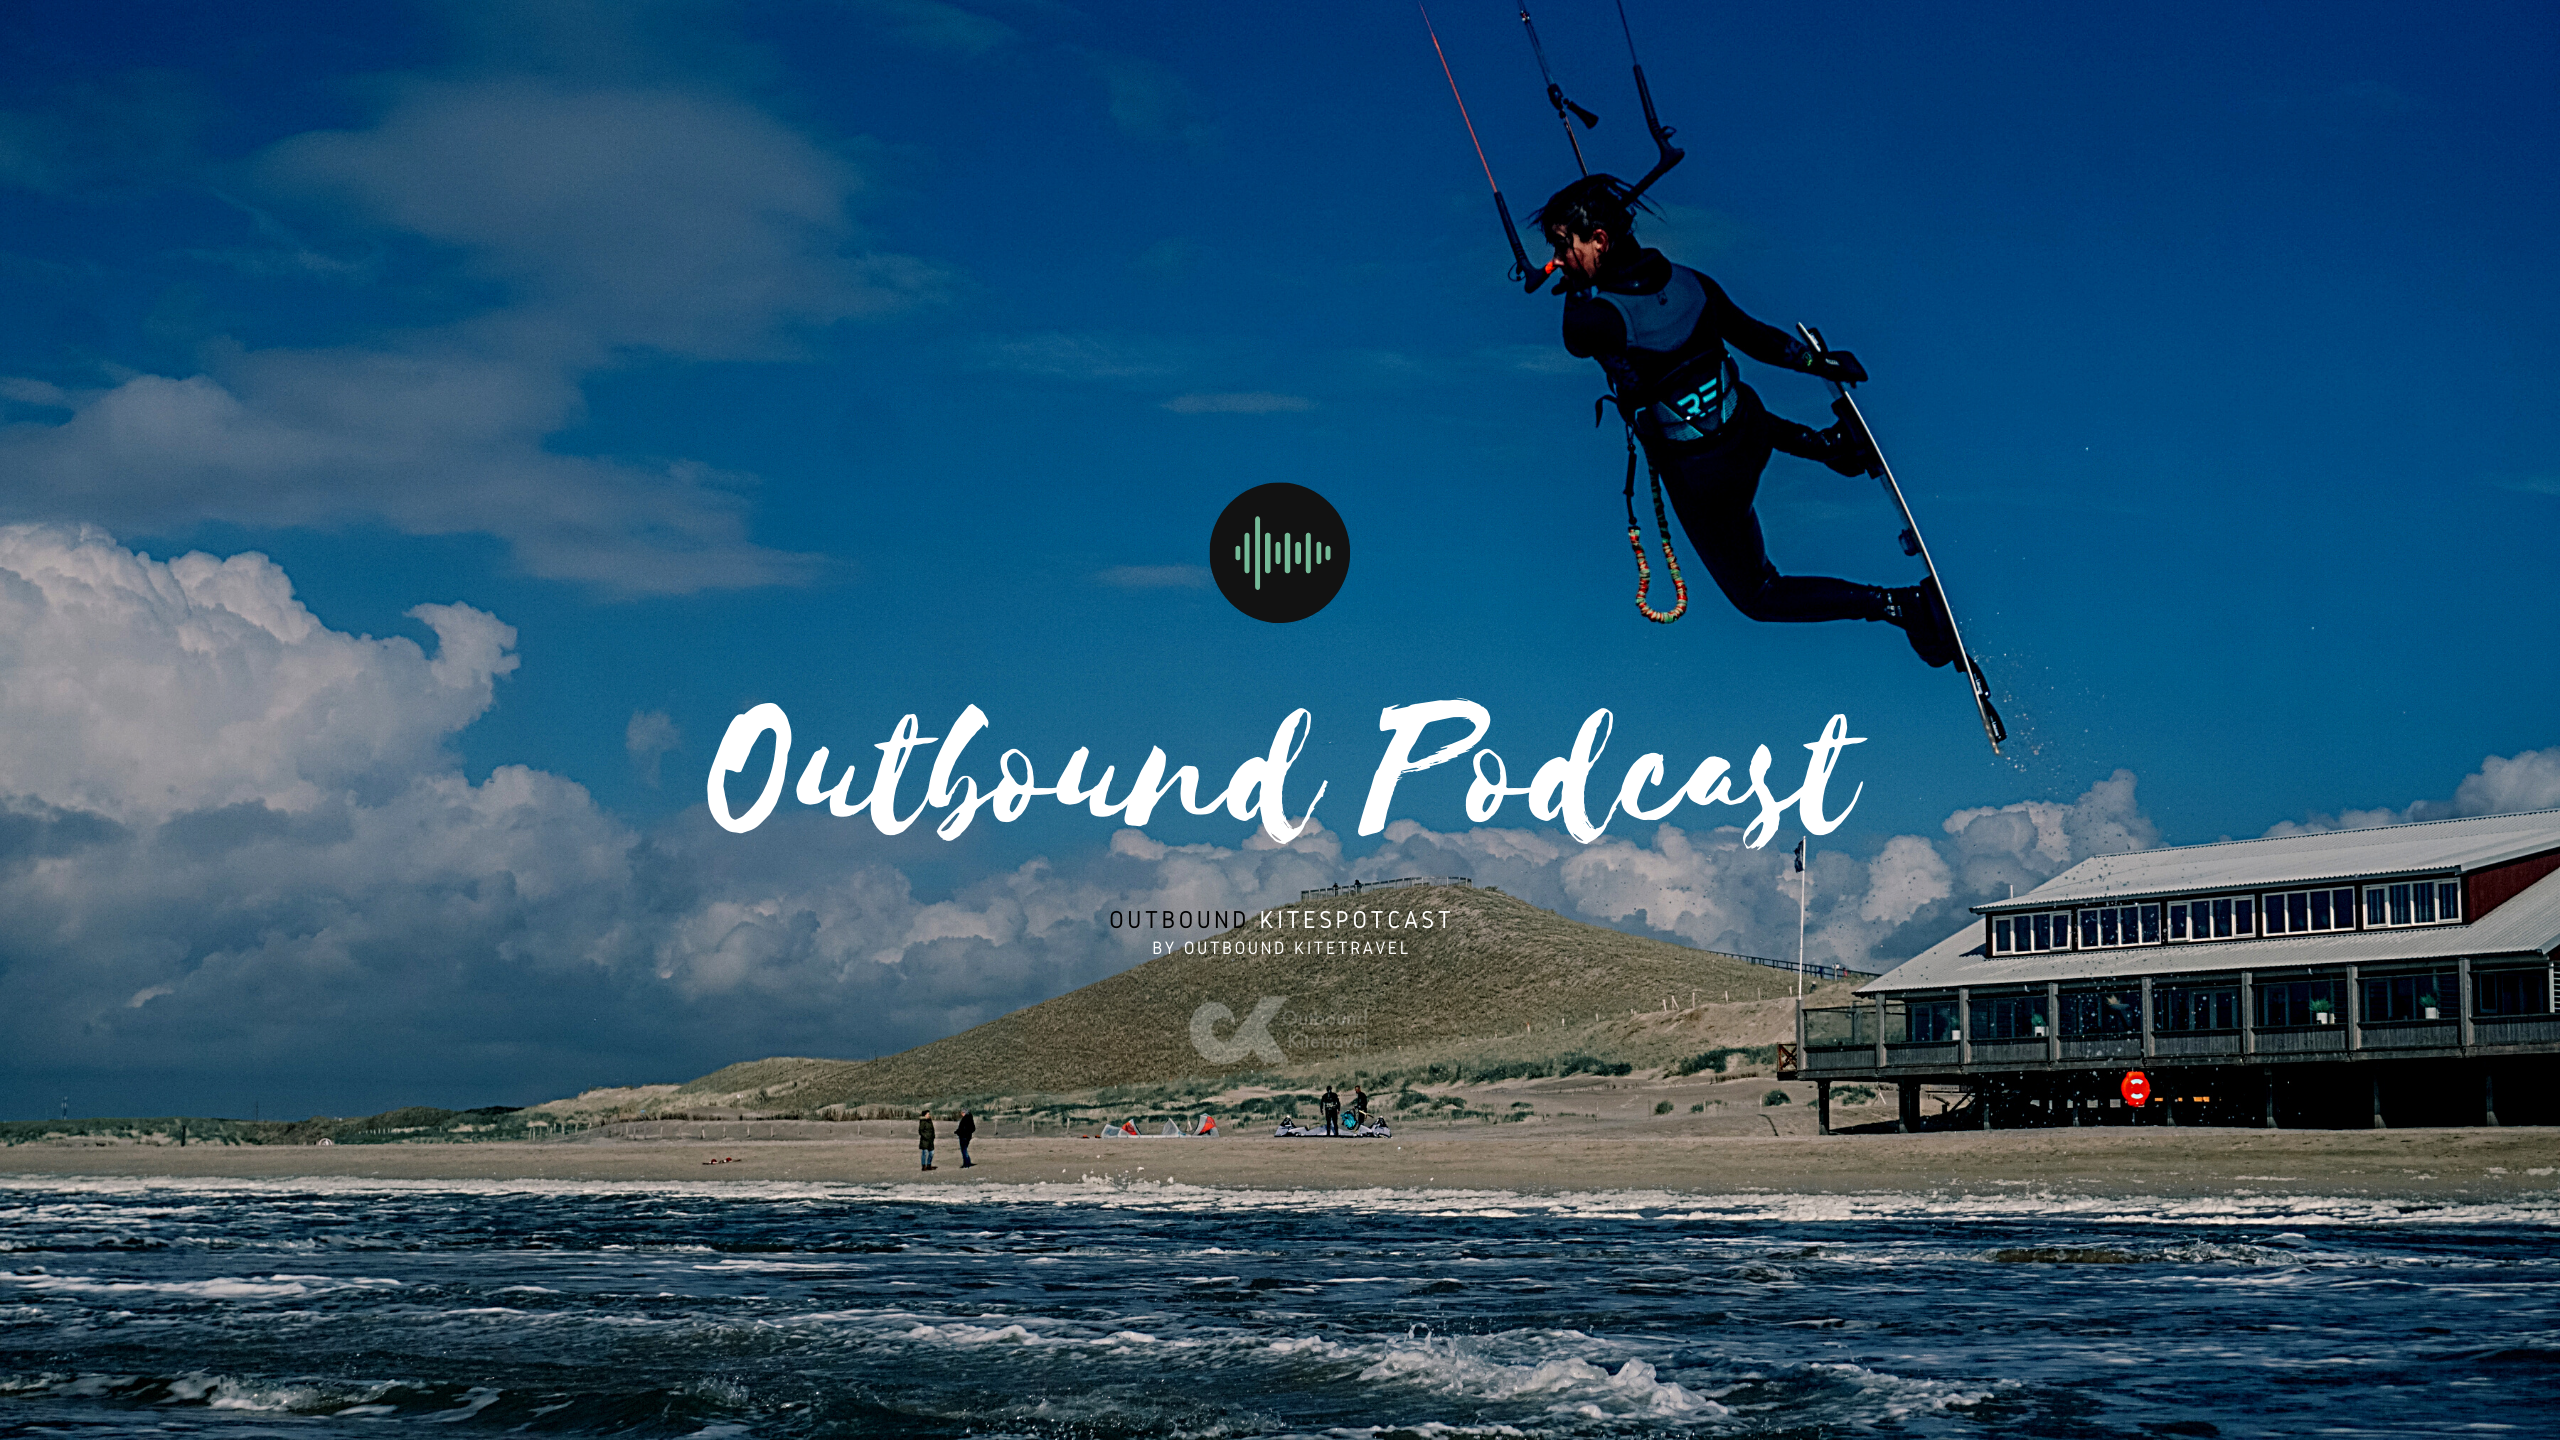 Podcast Outbound kitesurf podcast